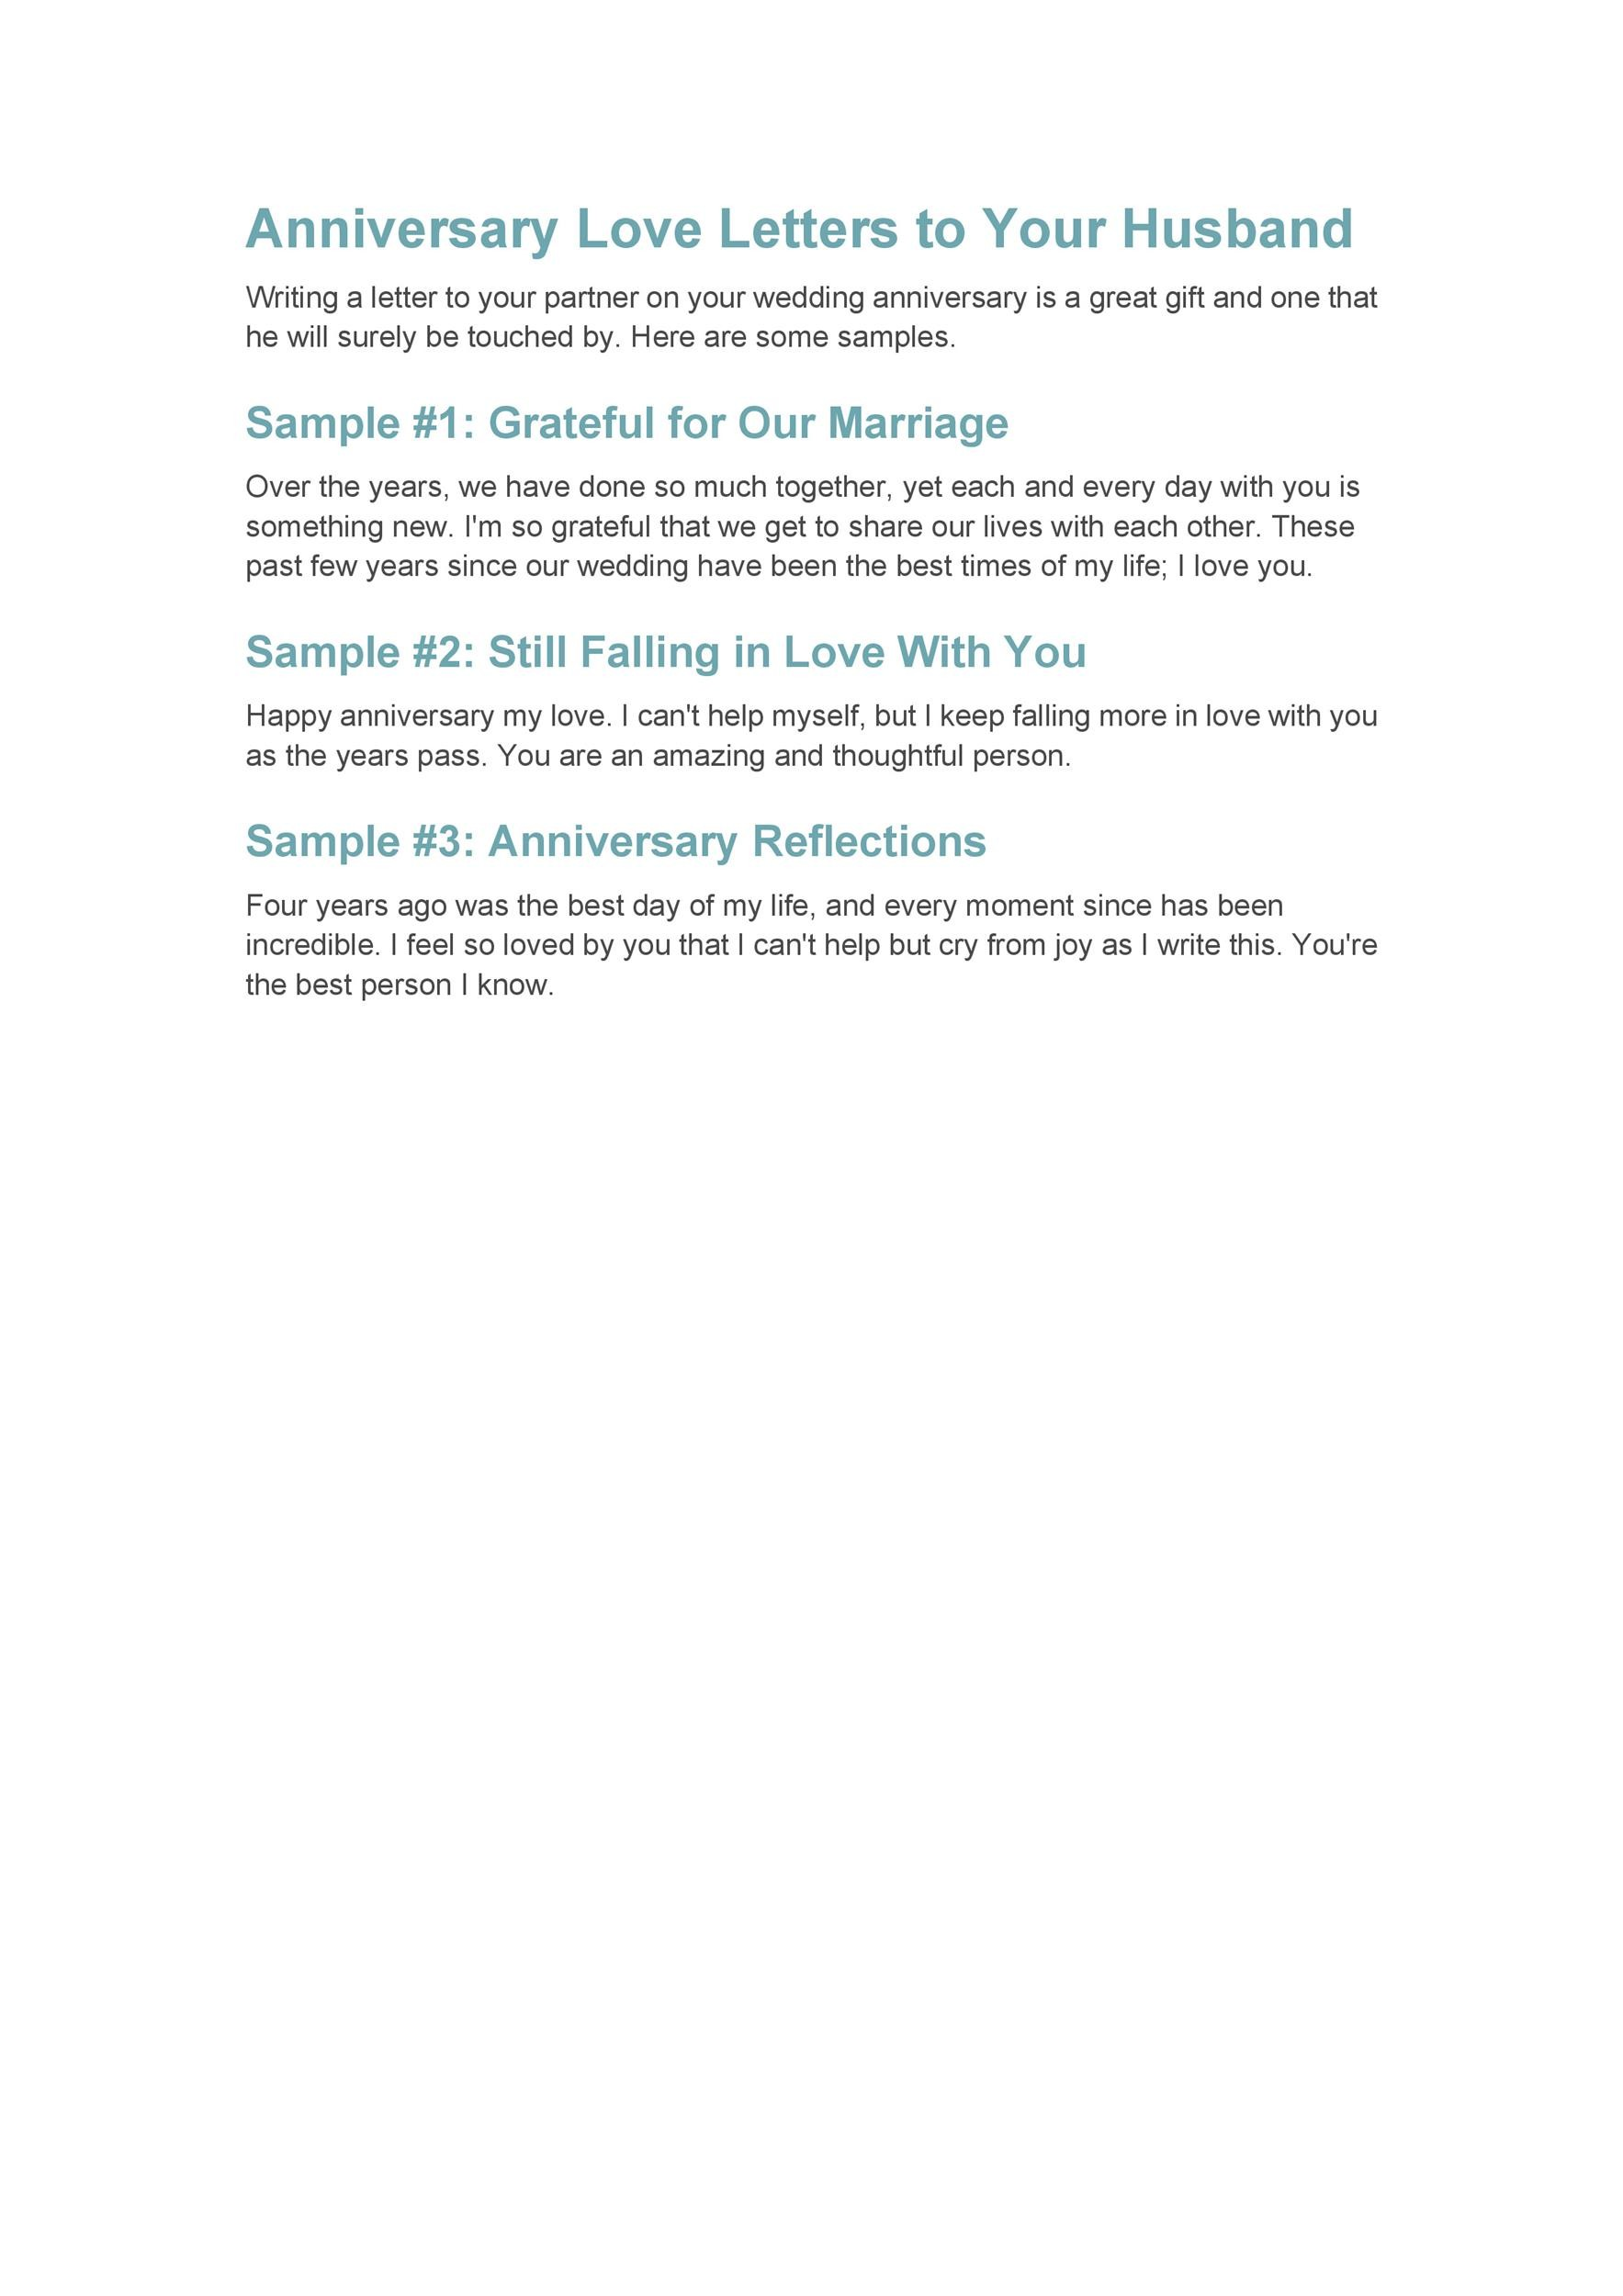 50 Romantic Anniversary Letters For Him Or Her ᐅ Template Lab